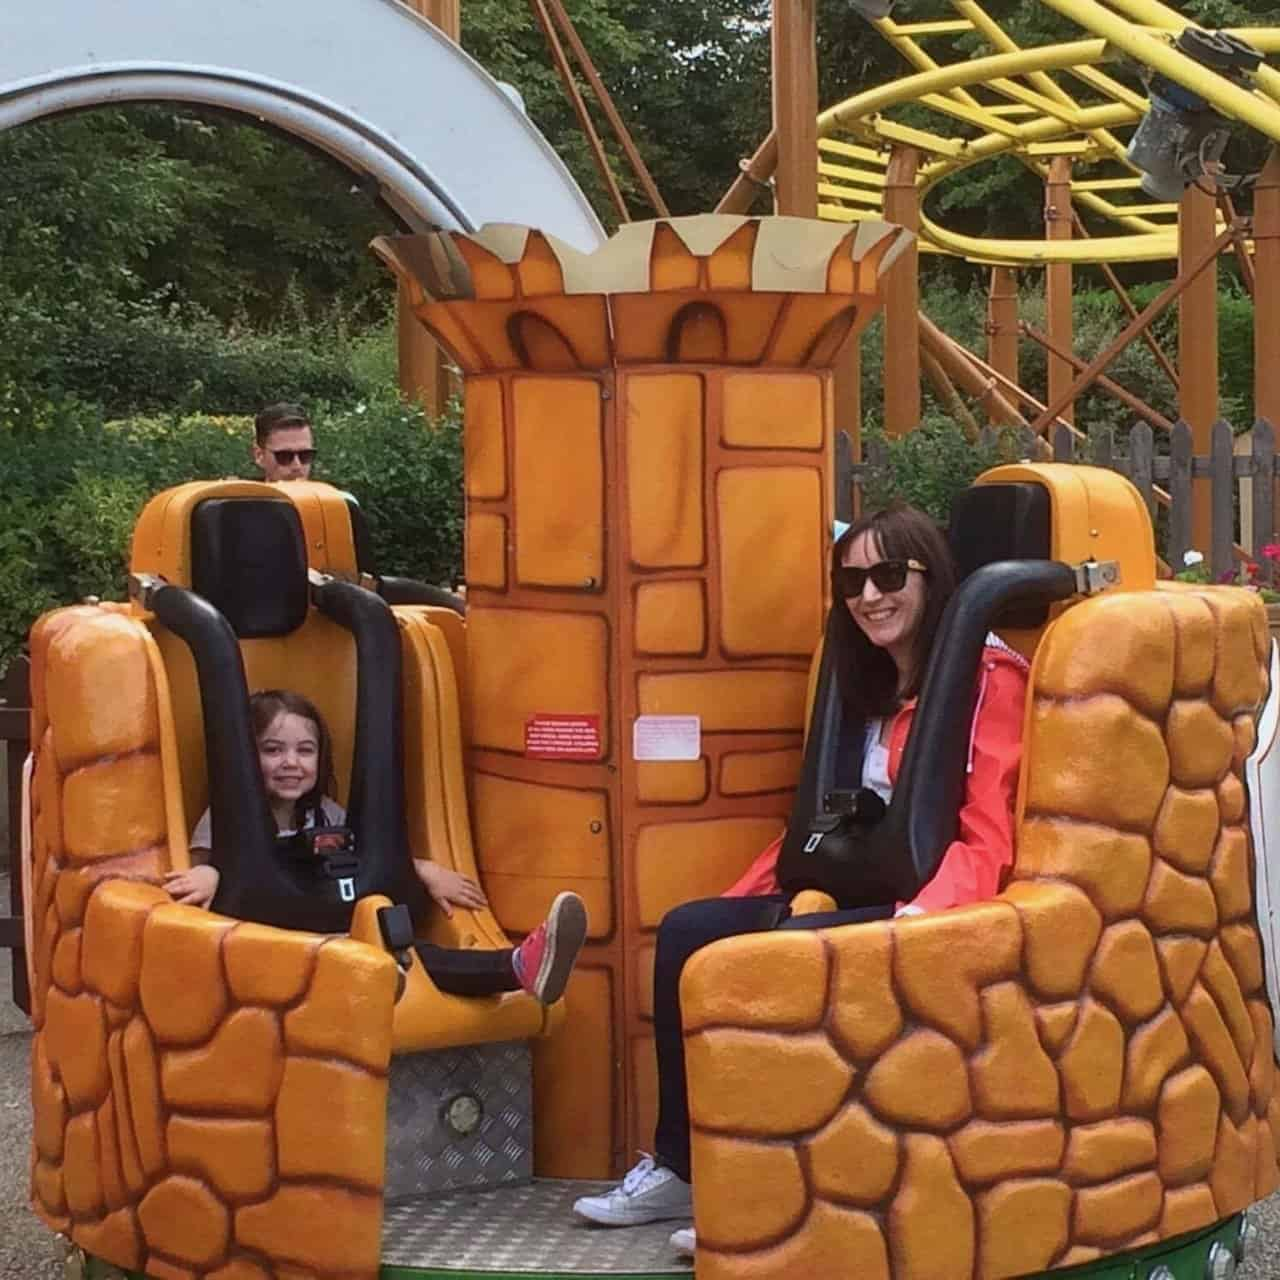 Thea and Becky on a ride at Gulliver's Land Theme Park Milton Keynes